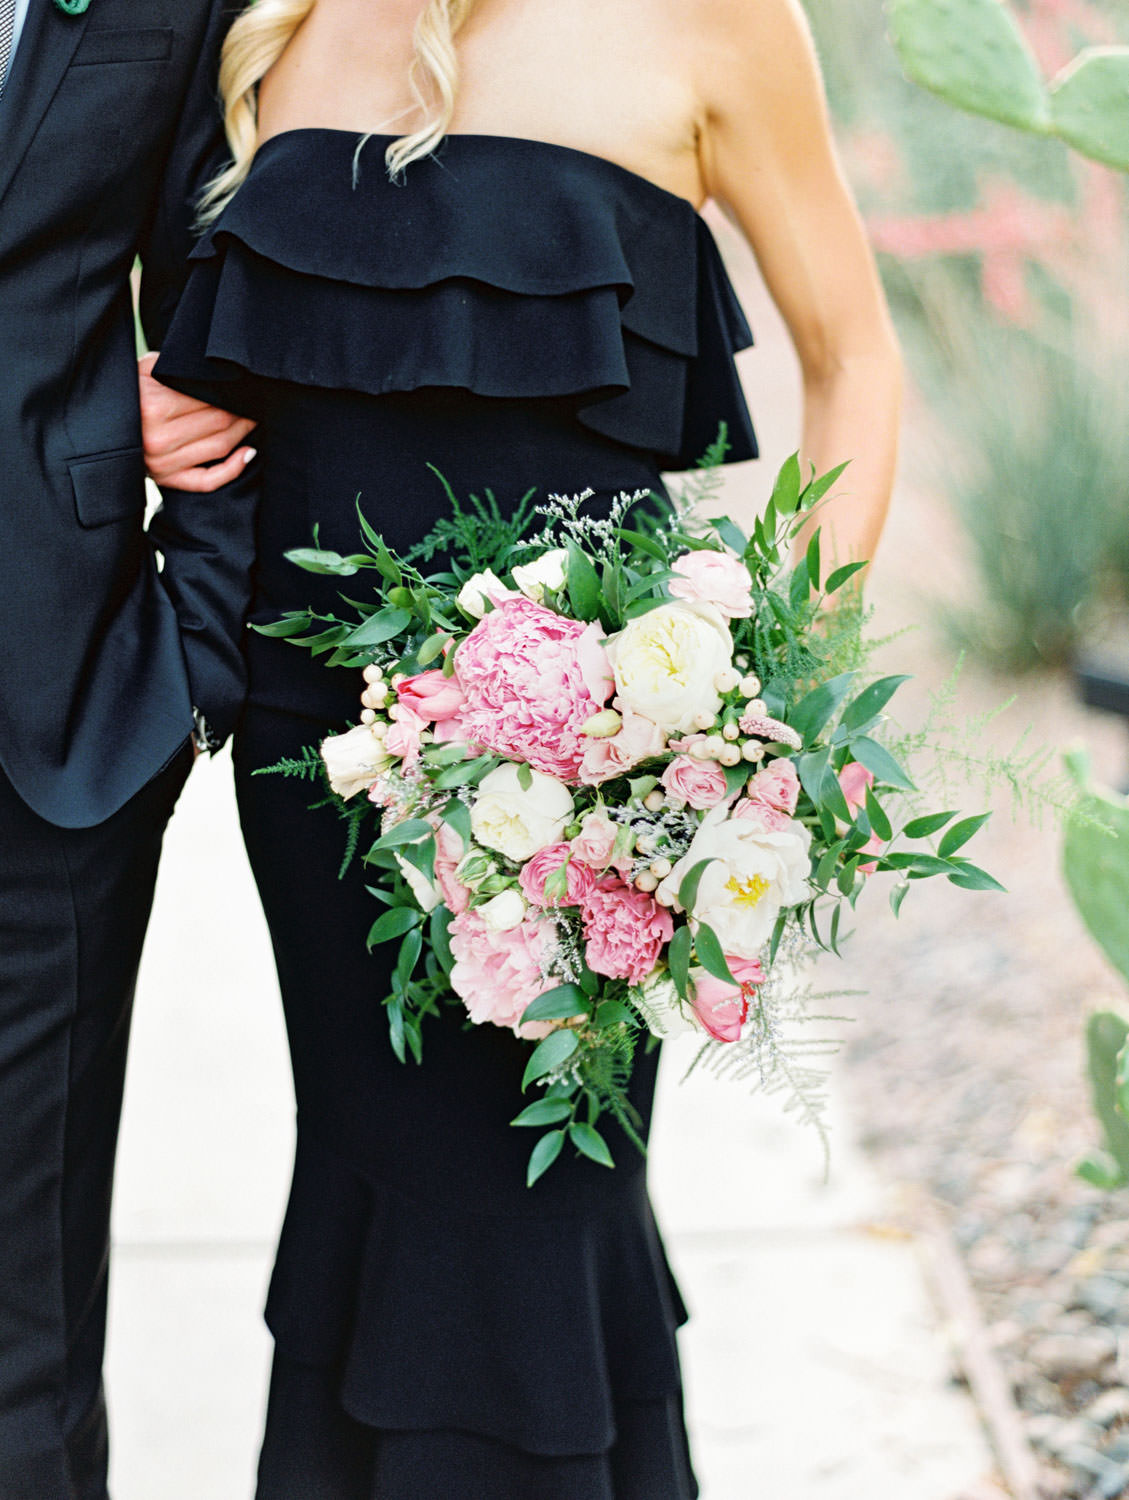 Bride holding ivory, pink, and green bouquet wearing a black strapless dress and black heels and groom in black suit. La Quinta Resort Engagement Photos on Film by Cavin Elizabeth Photography